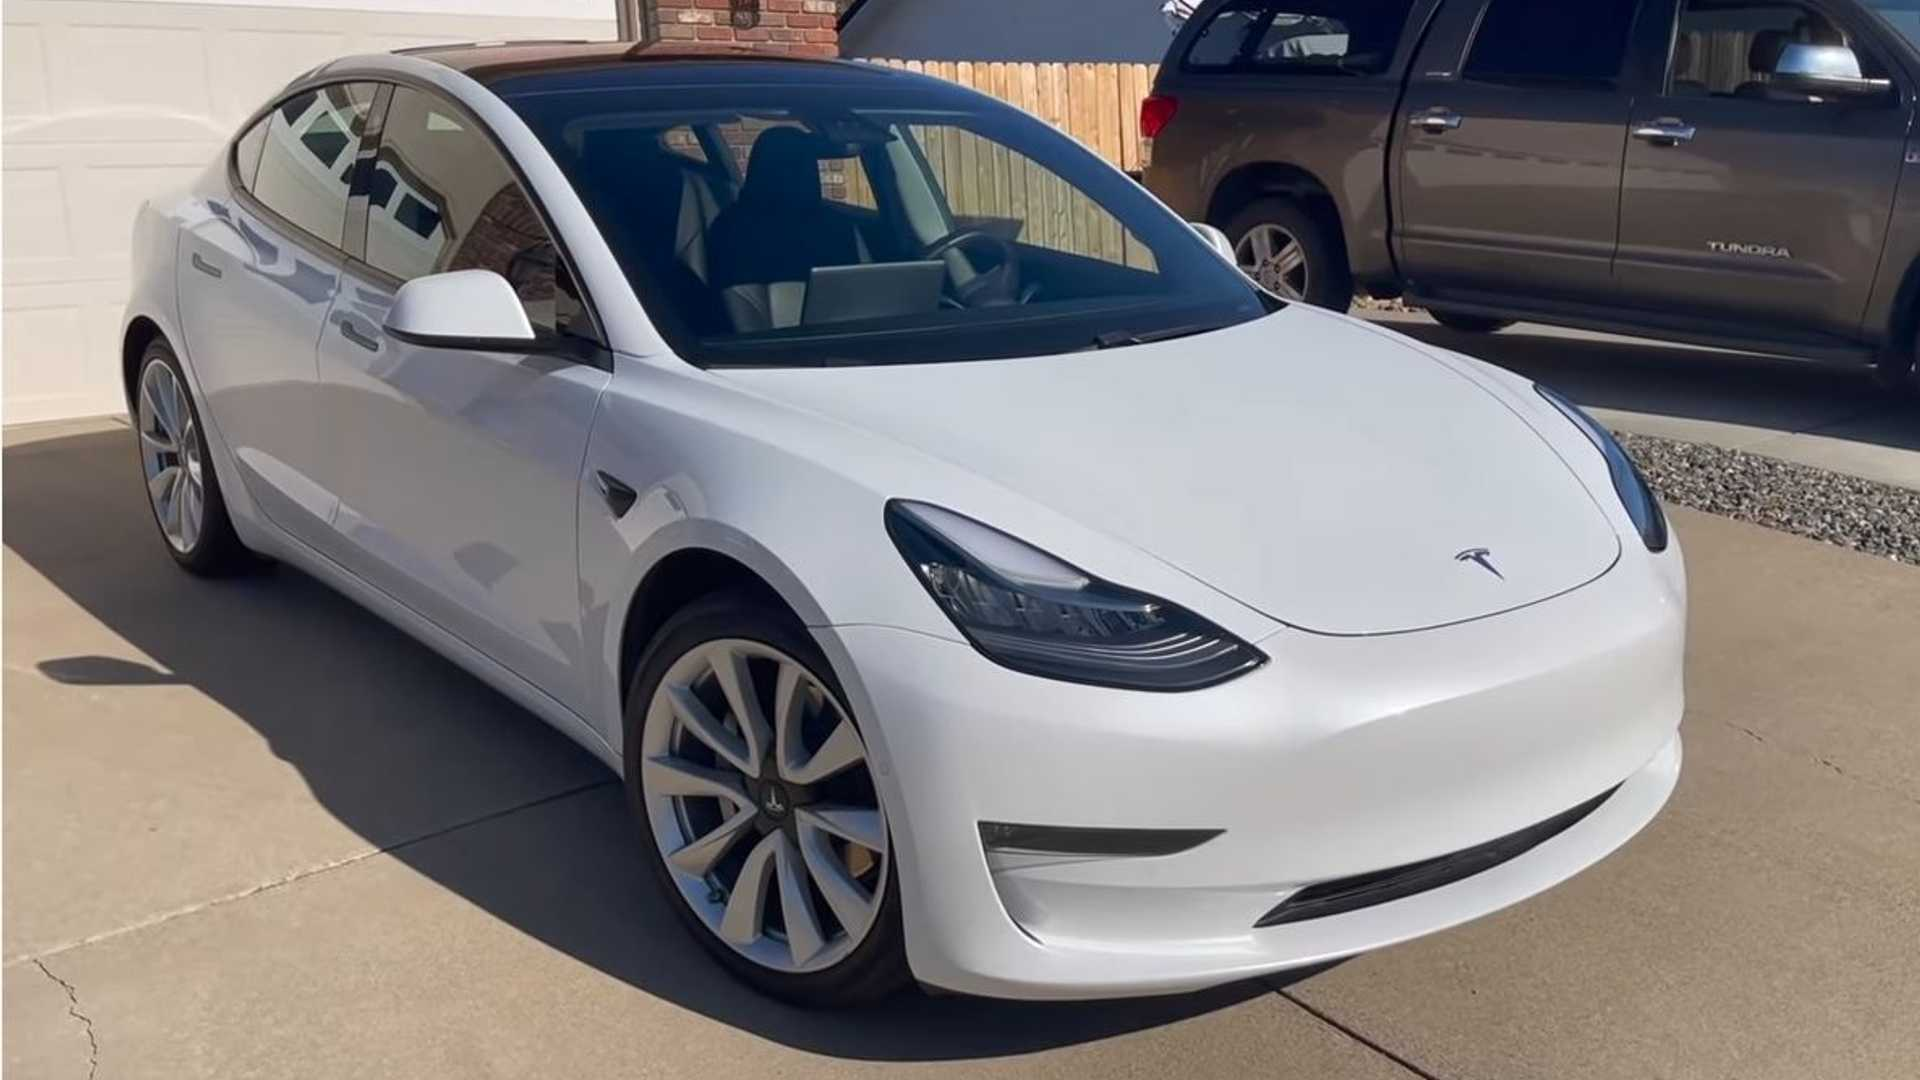 Tesla Model 3 In-Depth Review After 2.5 Years And 50,000 Miles